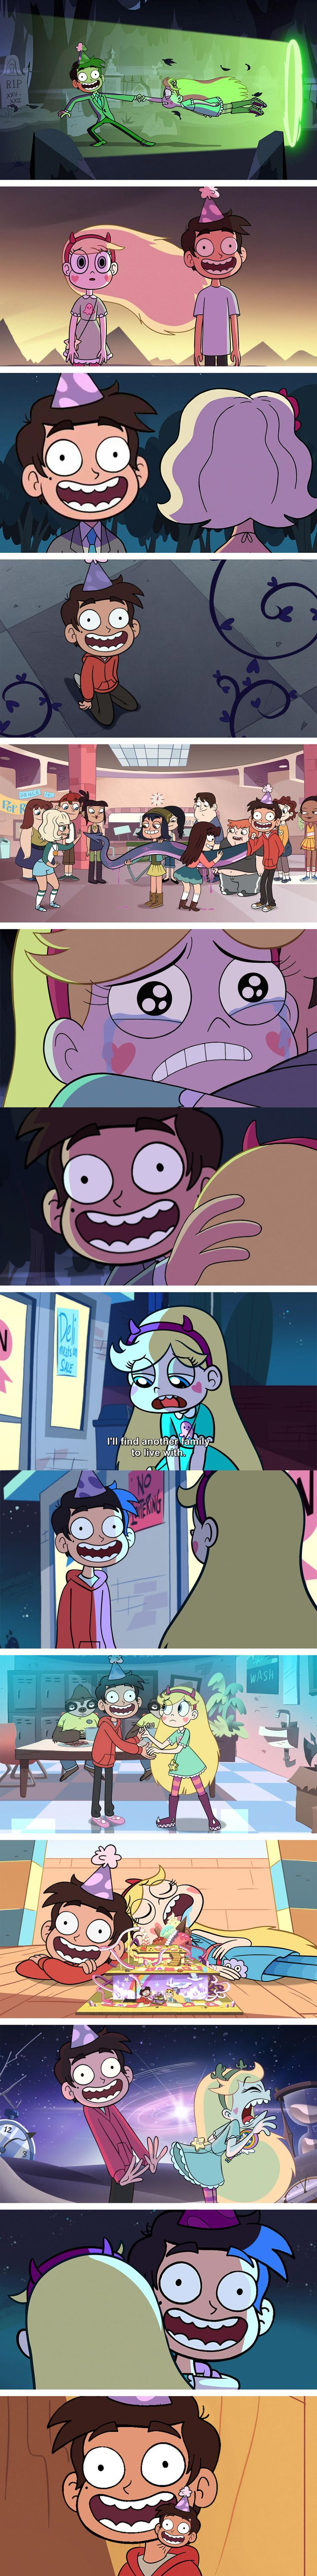 See more 'Star vs. the Forces of Evil' images on Know Your Meme!